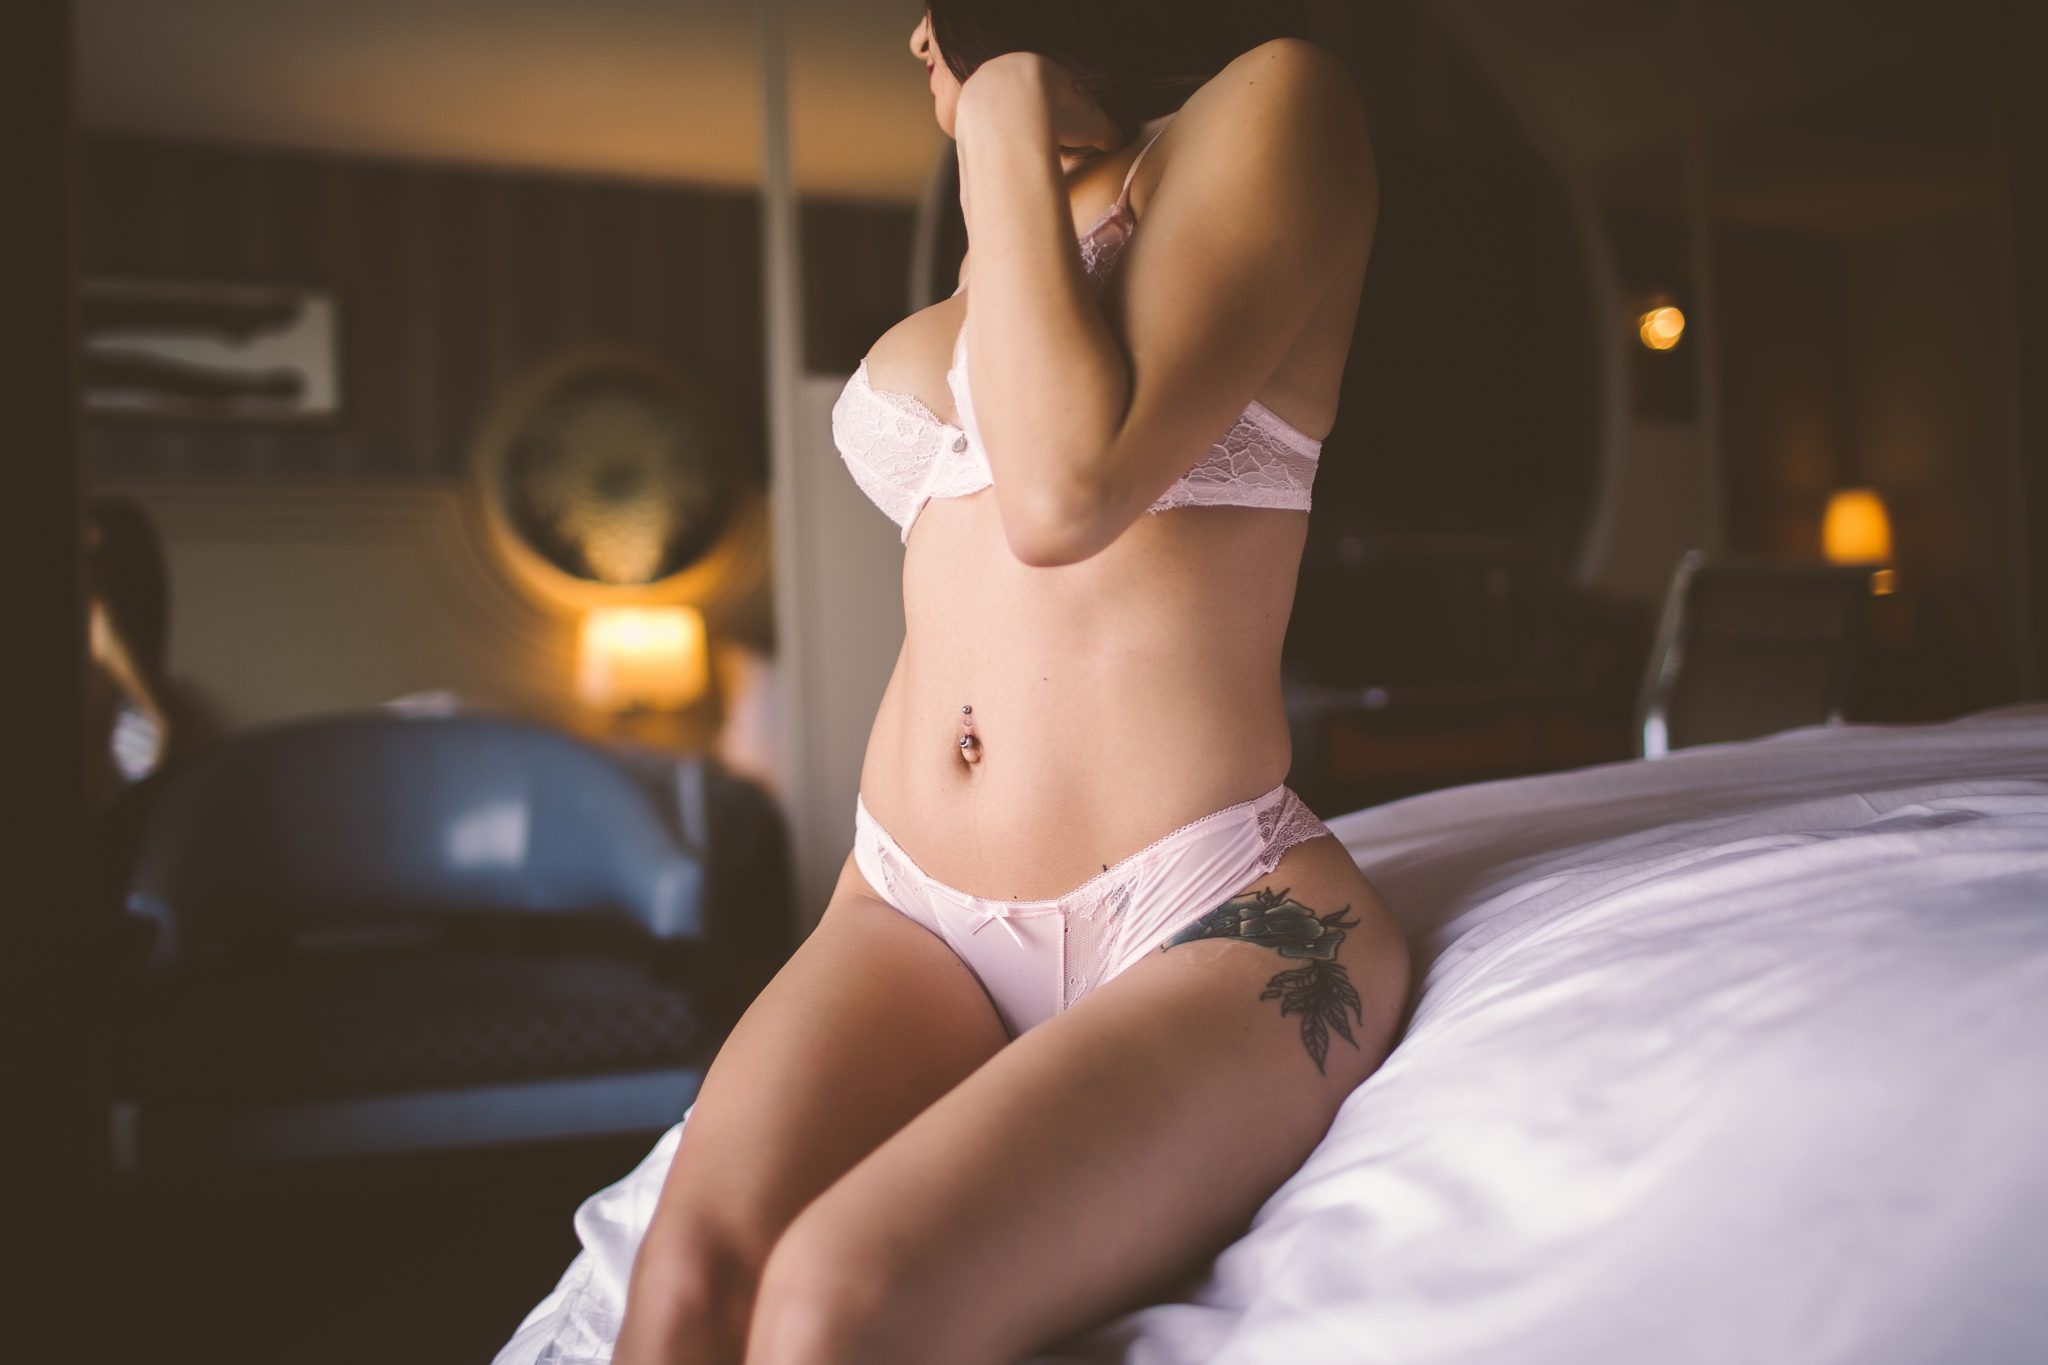 A sexy shot of a model on a hotel bed